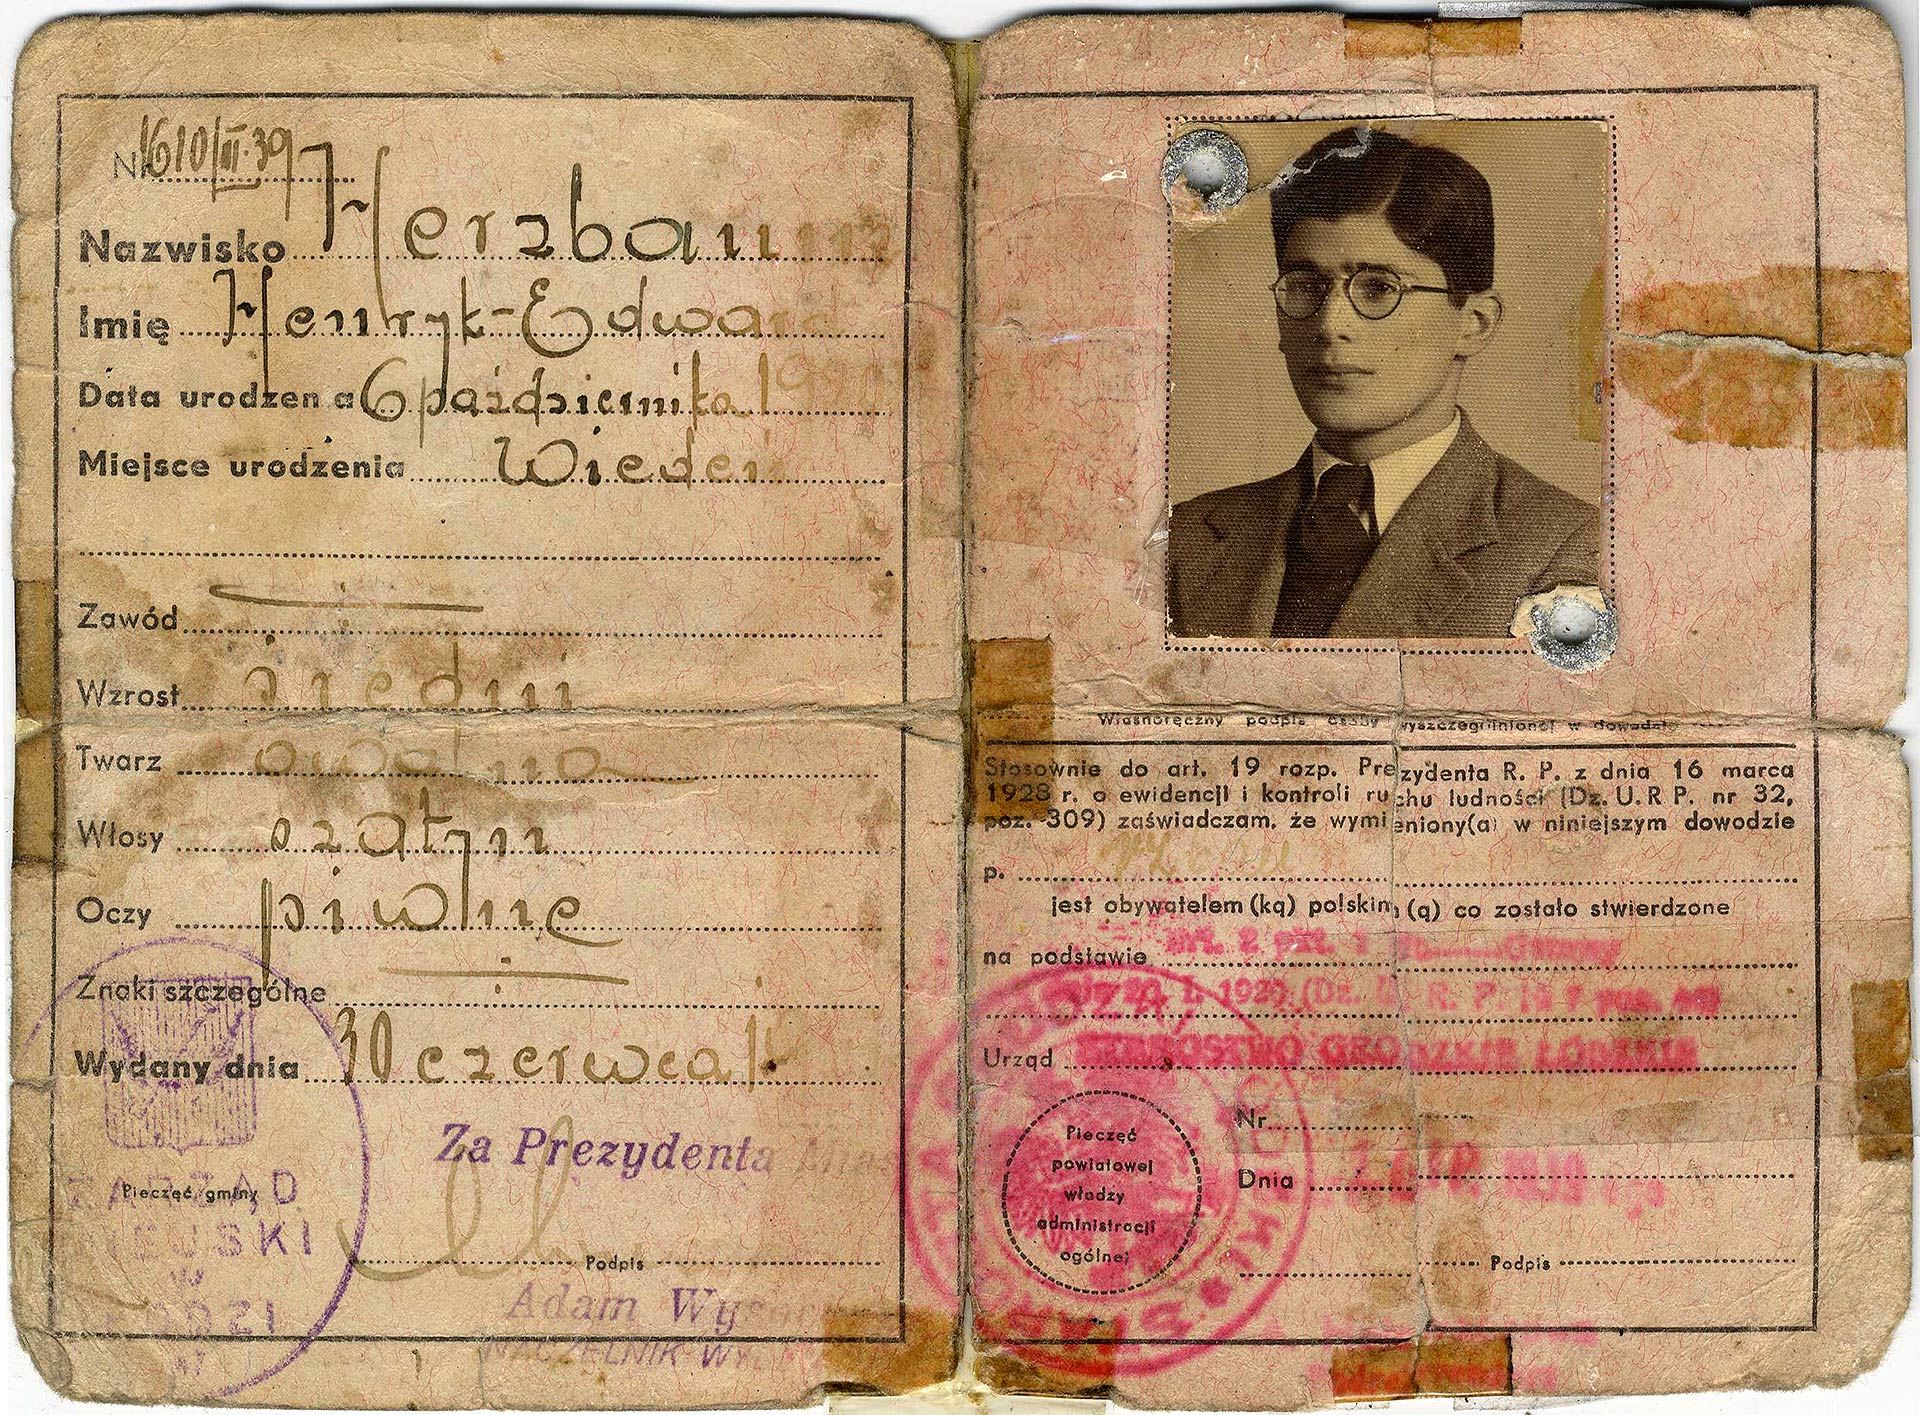 Edward Herzbaum/Hartry's wartime identity documents